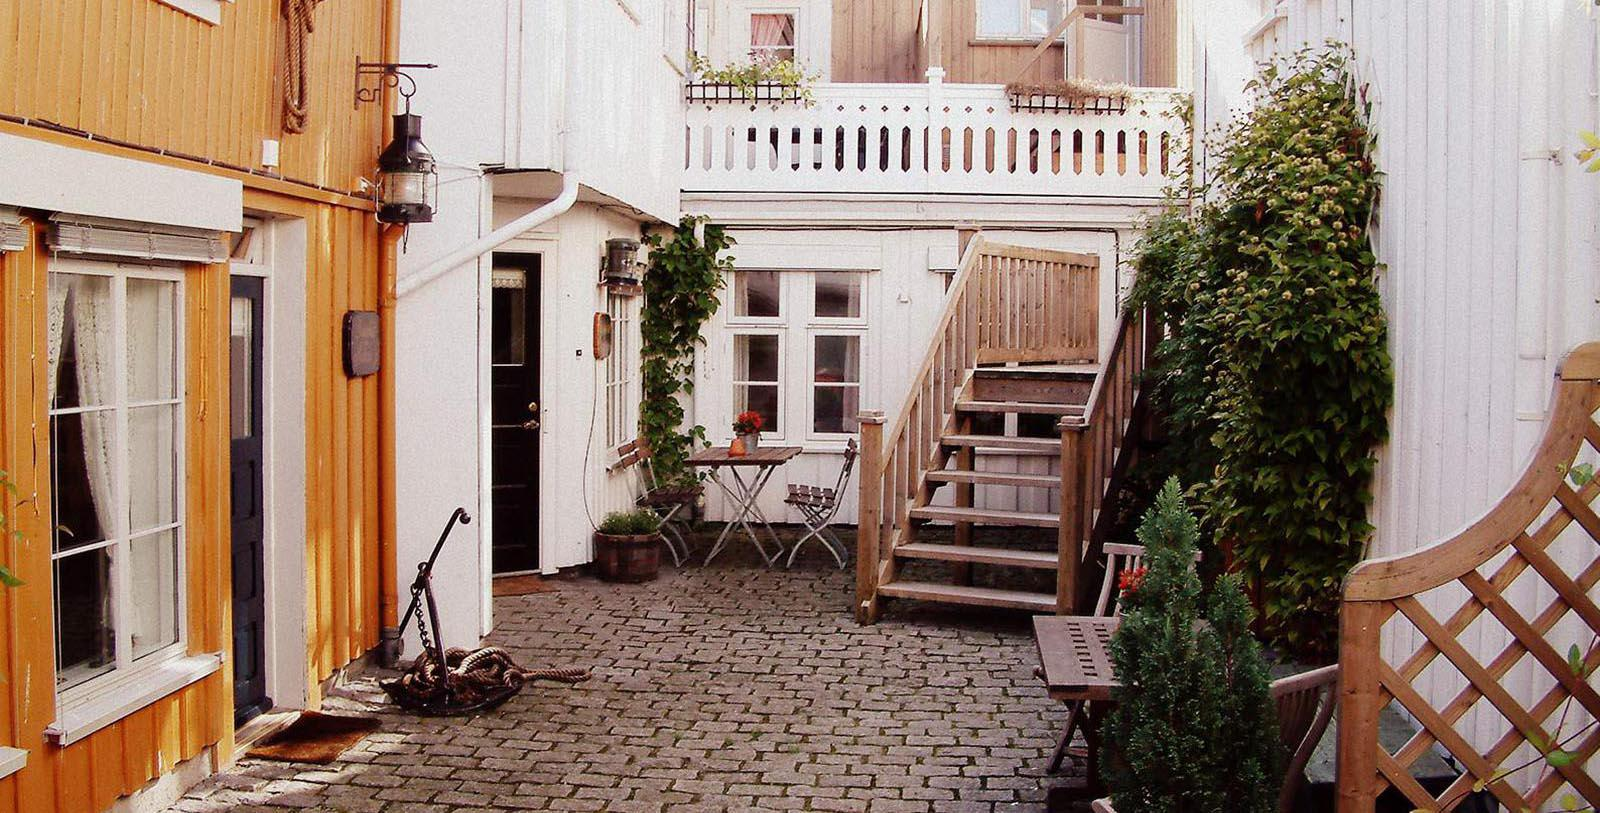 Image of courtyard area outside Det Lille Hotel, 1750, Member of Historic Hotels Worldwide, Risør, Norway, Special Offers, Discounted Rates, Families, Romantic Escape, Honeymoons, Anniversaries, Reunions